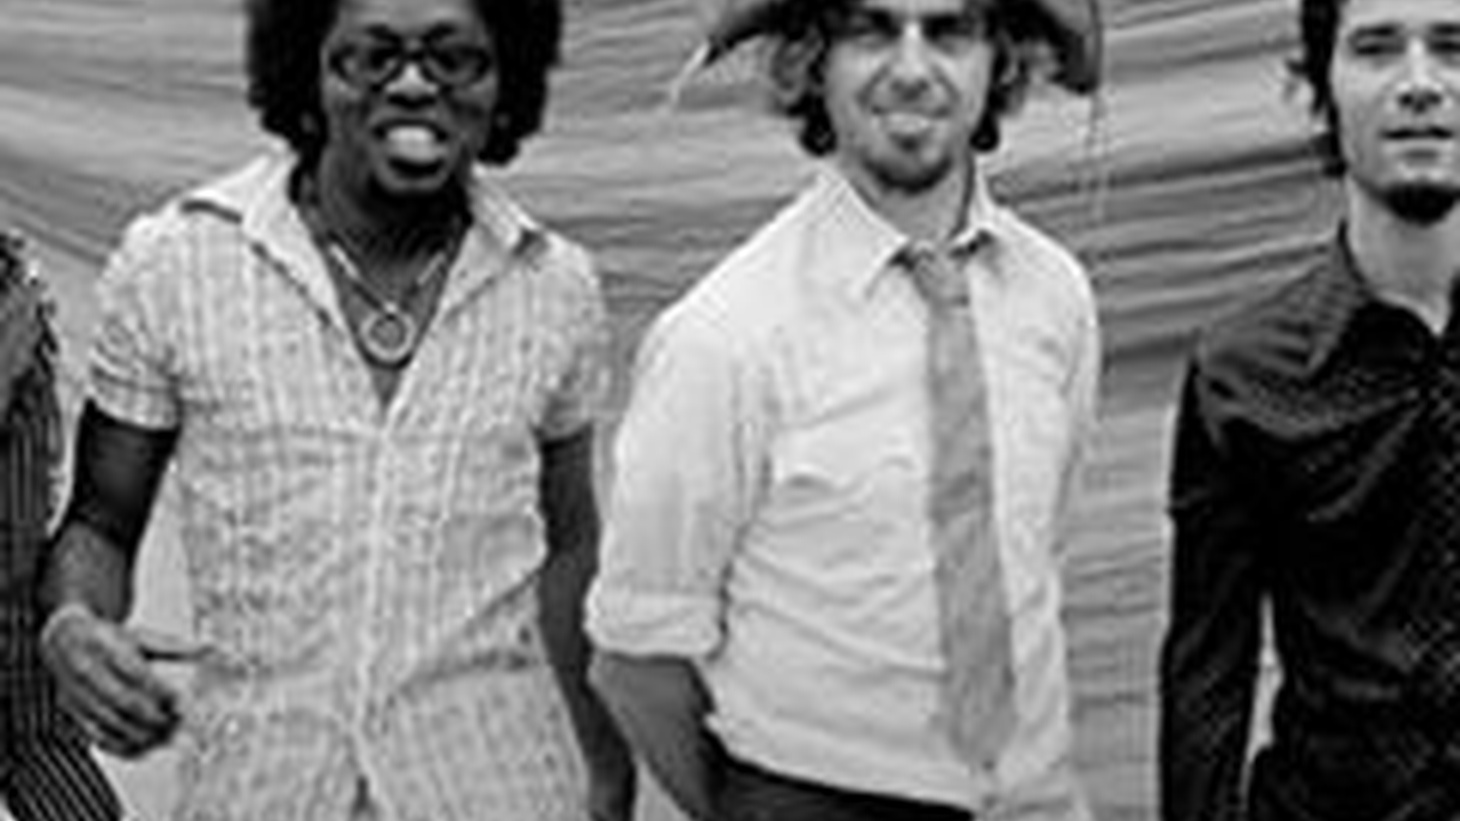 Forro in the Dark are a melting pot of New York City- based musicians who love the music of Brazil. They've updated this traditional genre, Forro, with electric guitars and modern percussion that enhances the drive to get on the dance floor...